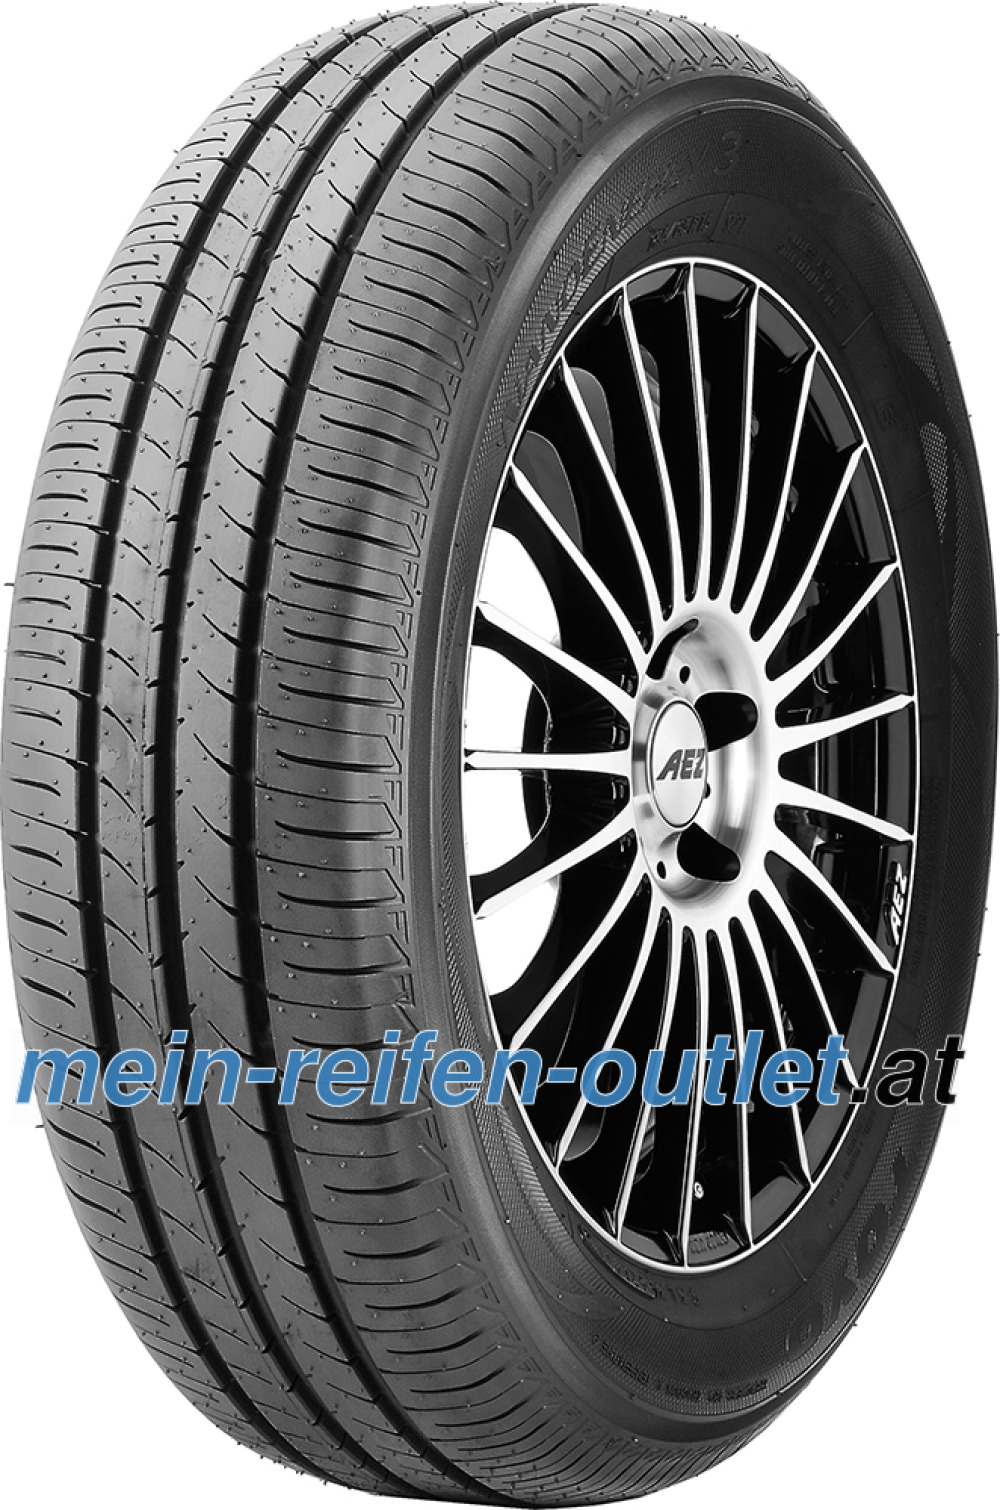 Toyo NanoEnergy 3 ( 175/65 R14 86T XL )